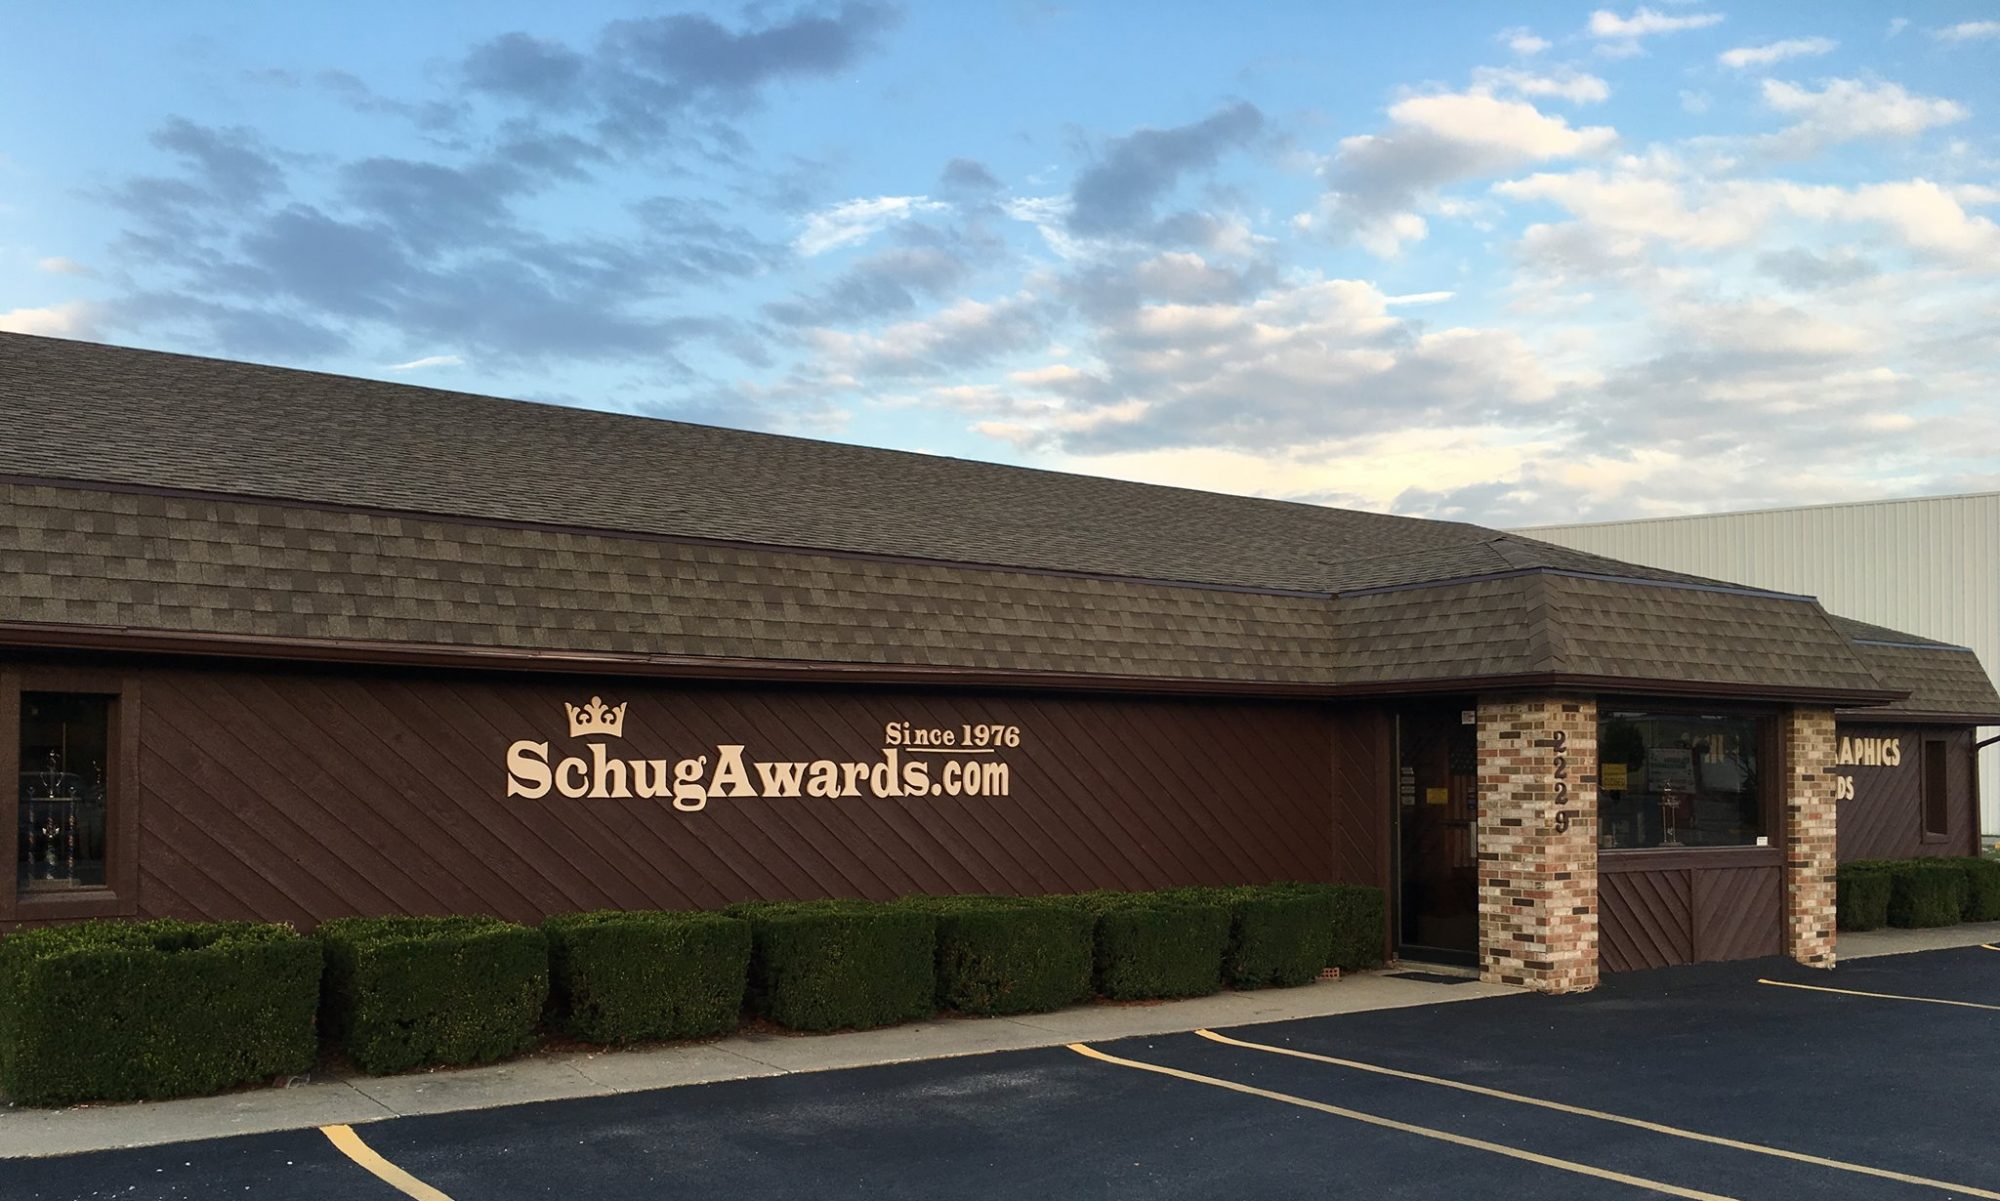 Schug Awards & Gifts